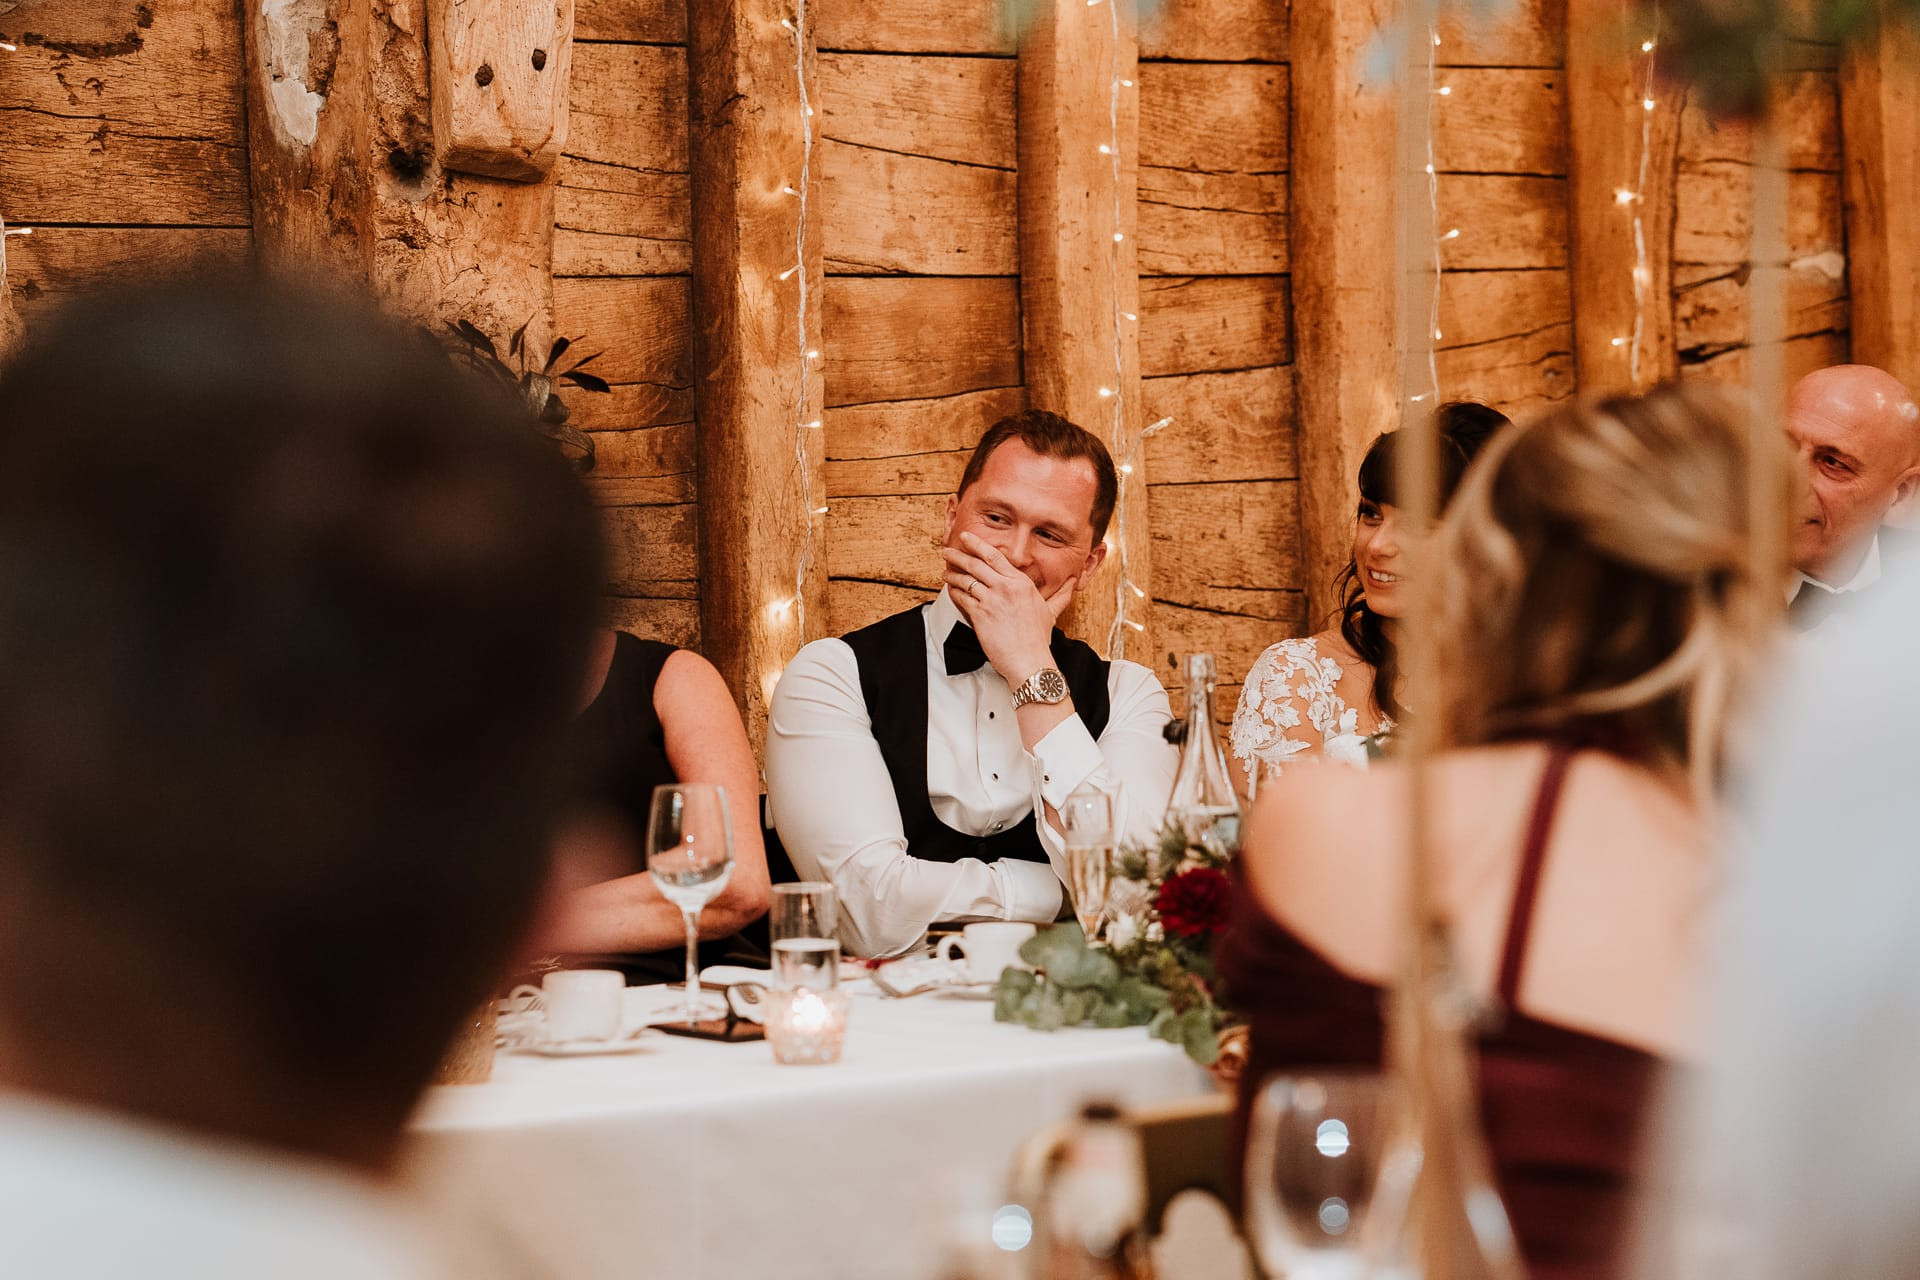 Groom hiding behind his hand during wedding speech